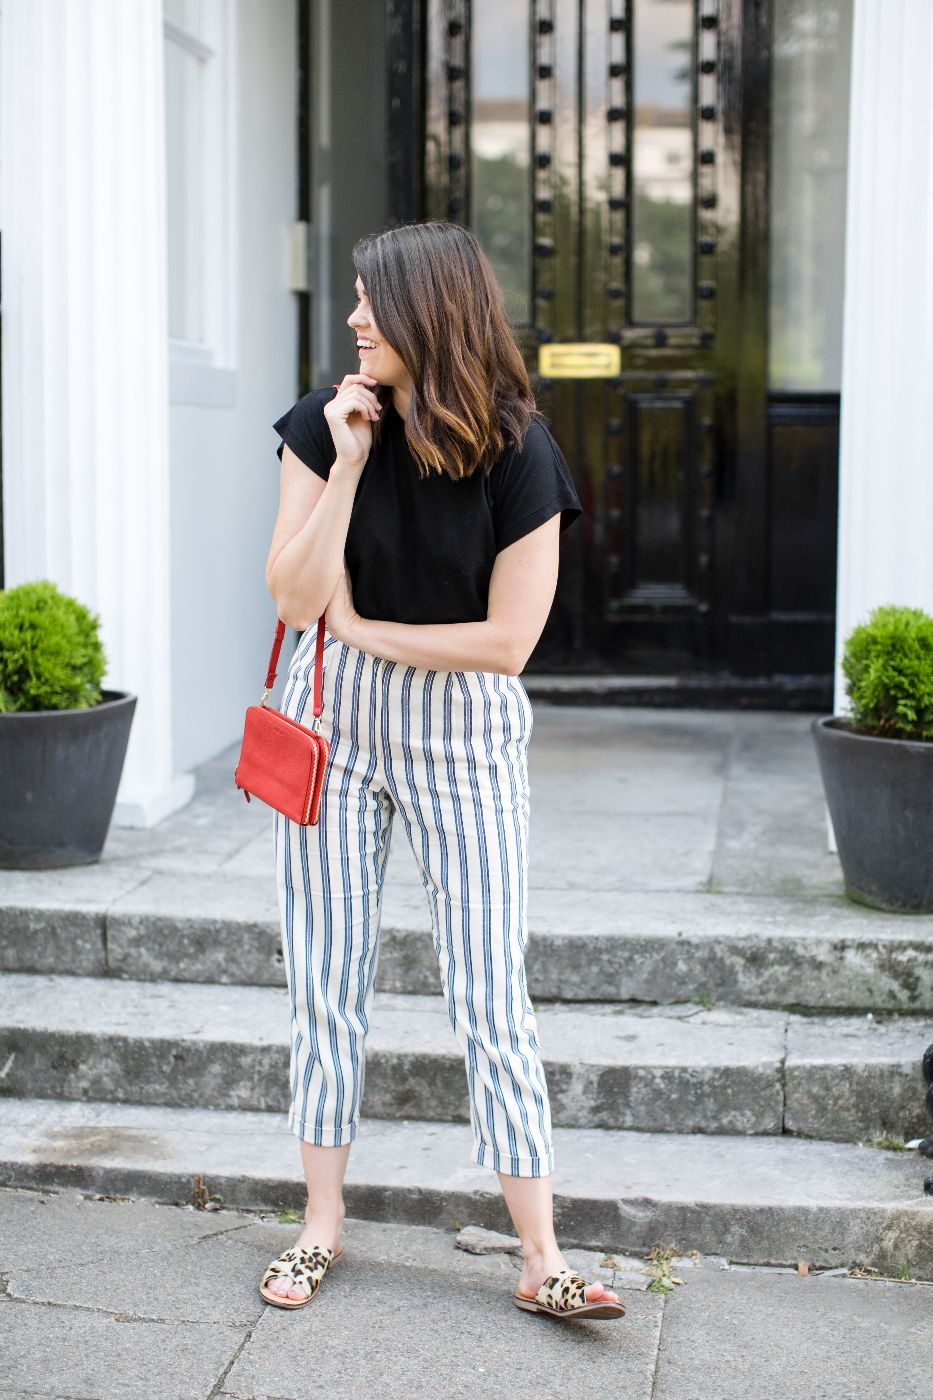 theannaedit-topshop-summer-trousers-whistles-bag-july-2017-11